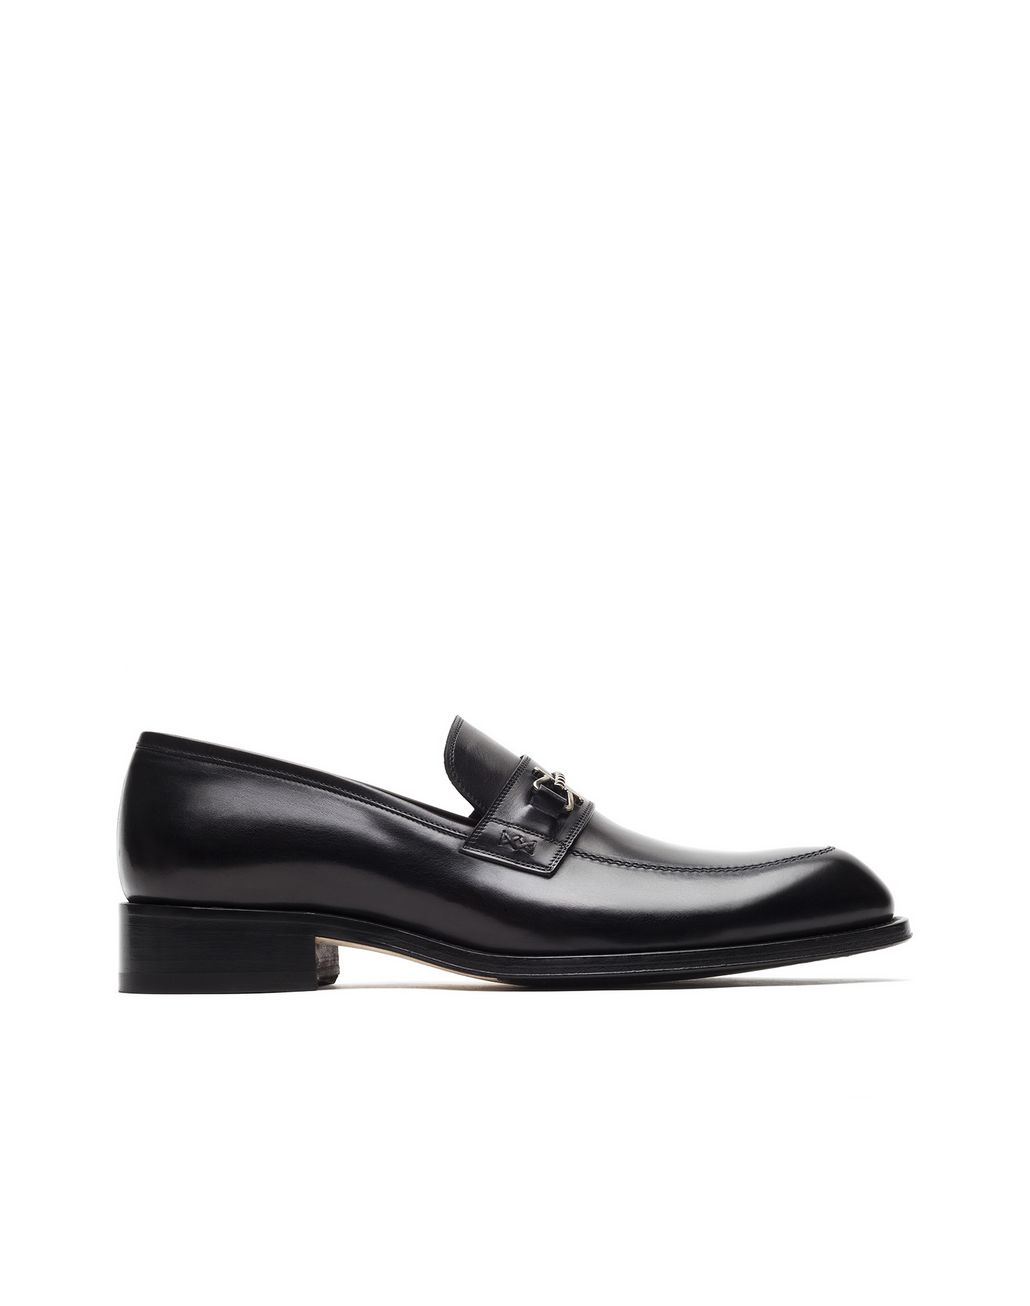 BRIONI Black Loafer with Metal Detail Loafers U f